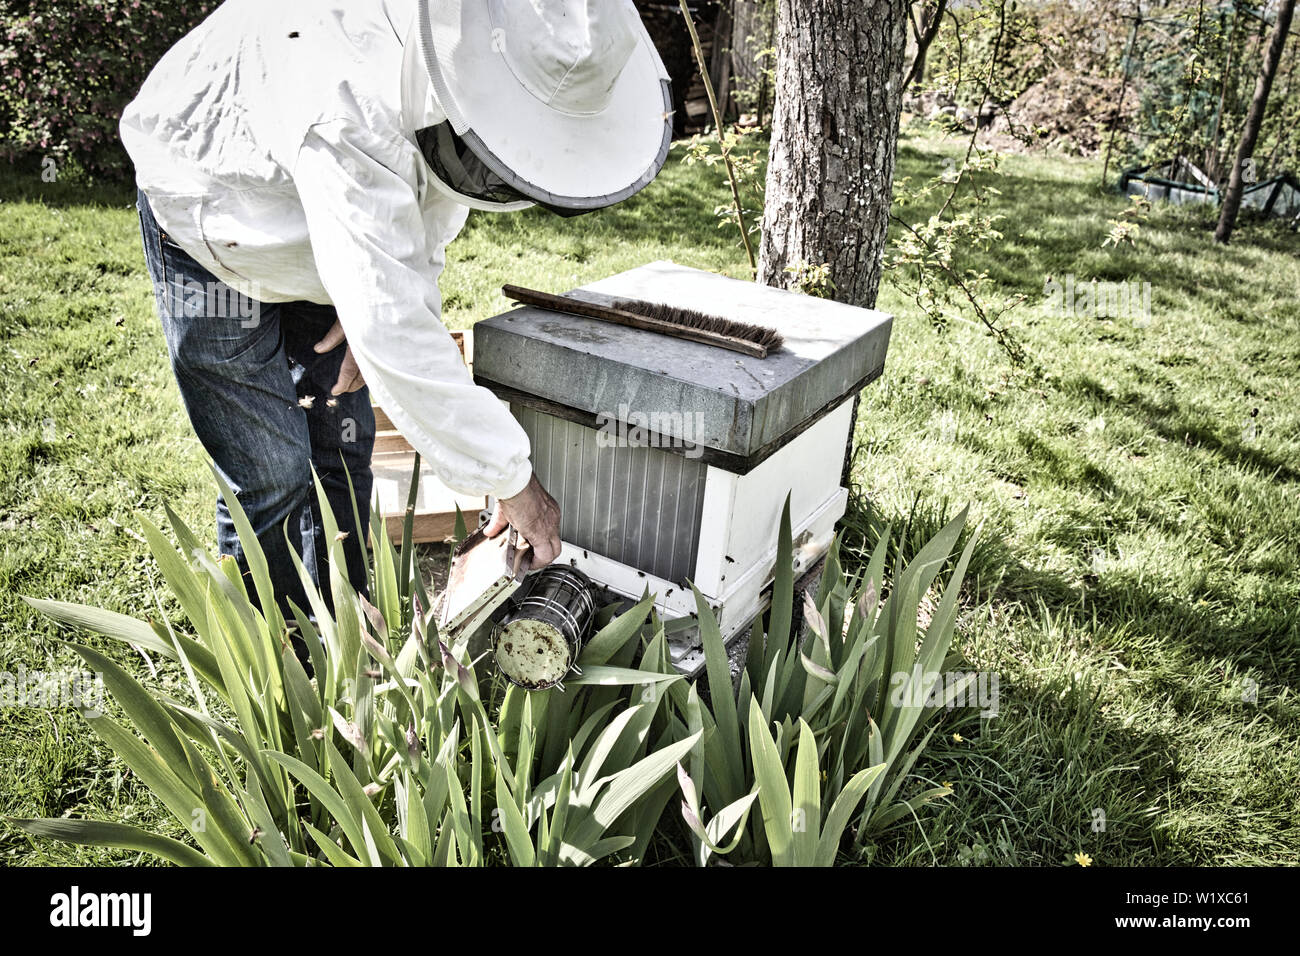 Commercial beekeeper at Work, Cleaning and Inspecting hive, looking for dead brood removal. Authentic scene of life in nature. Hive management - Stock Image